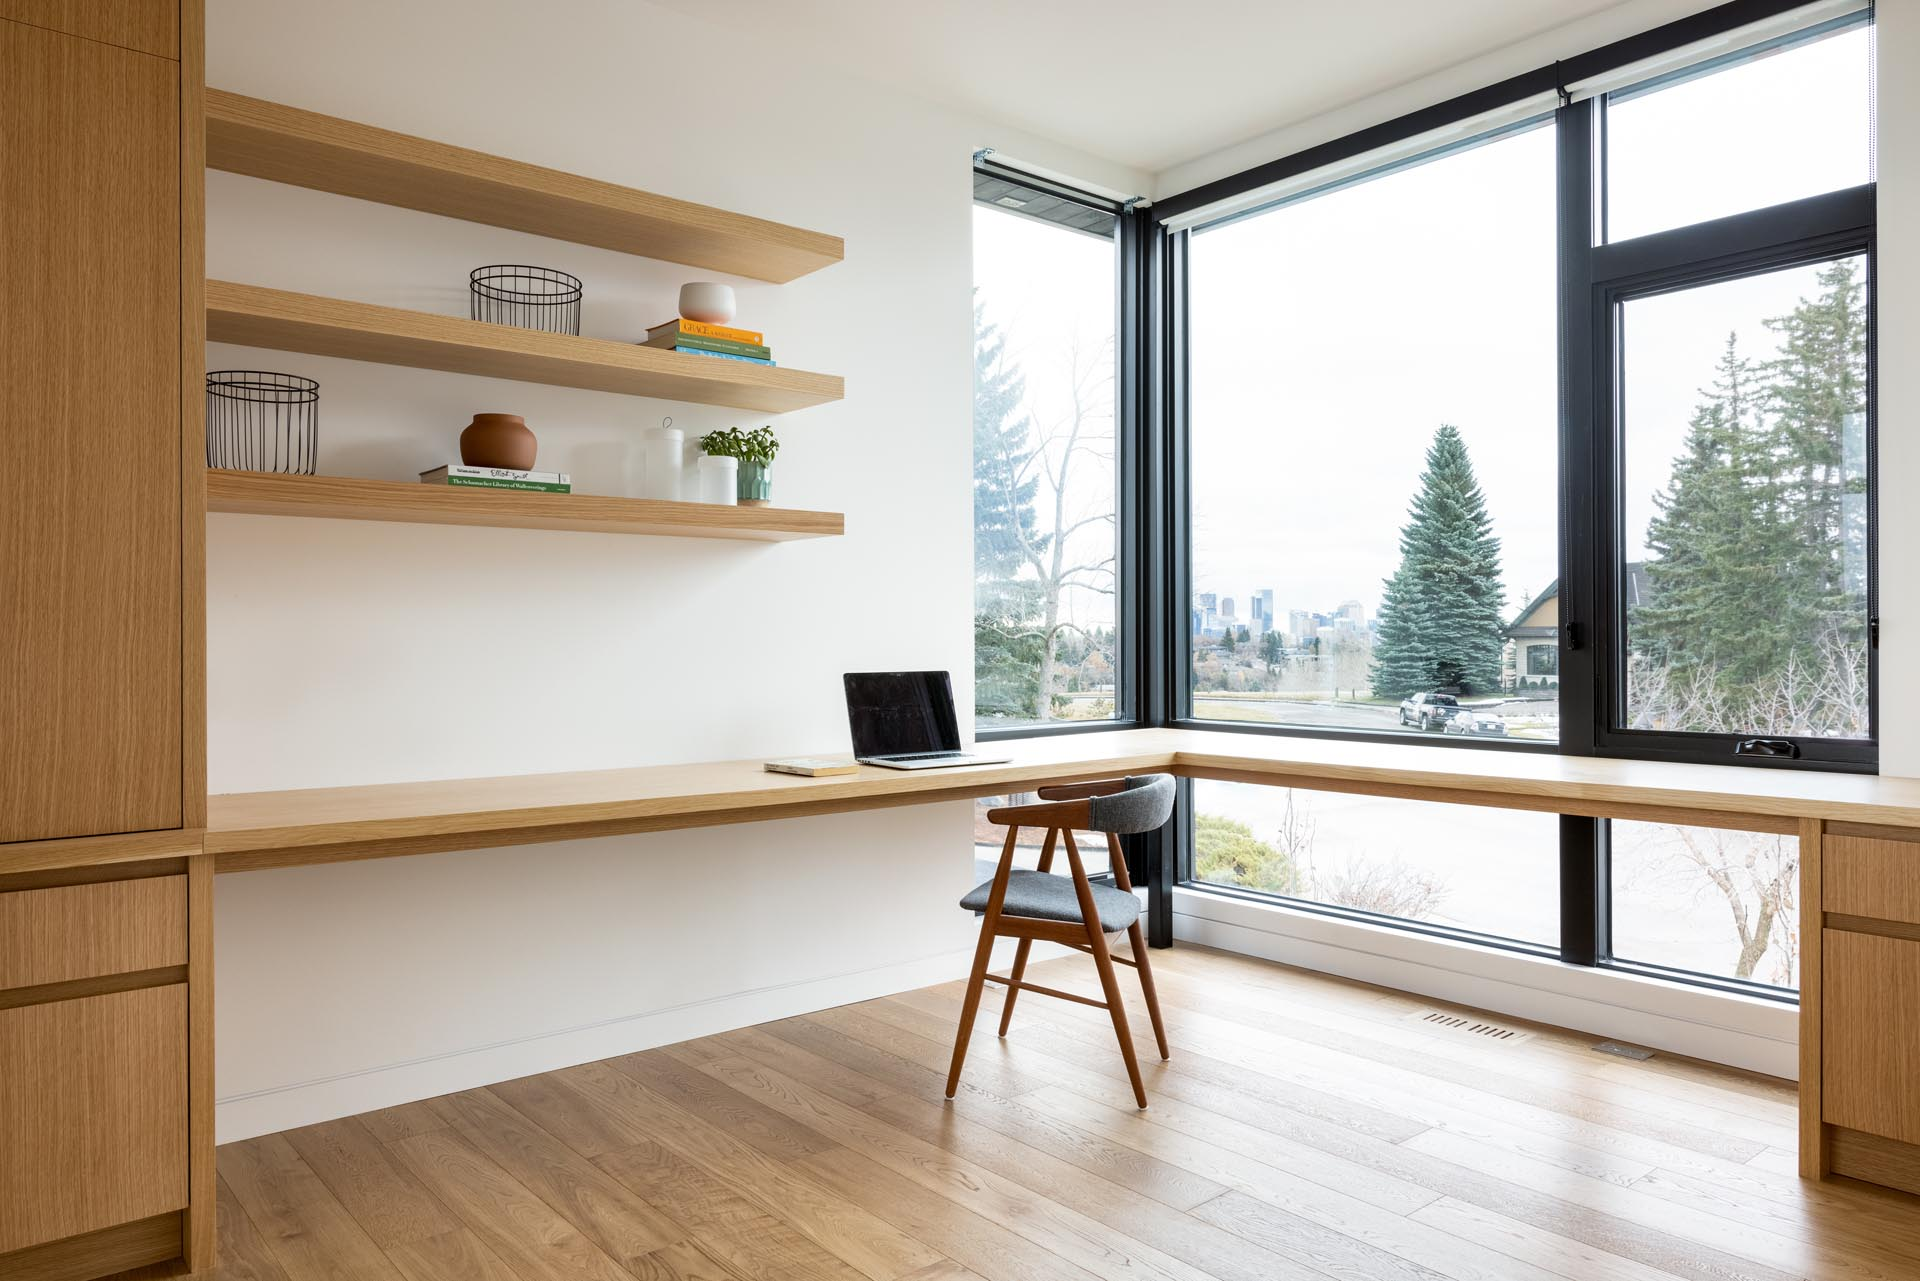 A home office with a custom designed wood desk that wraps around the corner of the room. Open shelving and cabinets add additional storage to the room.